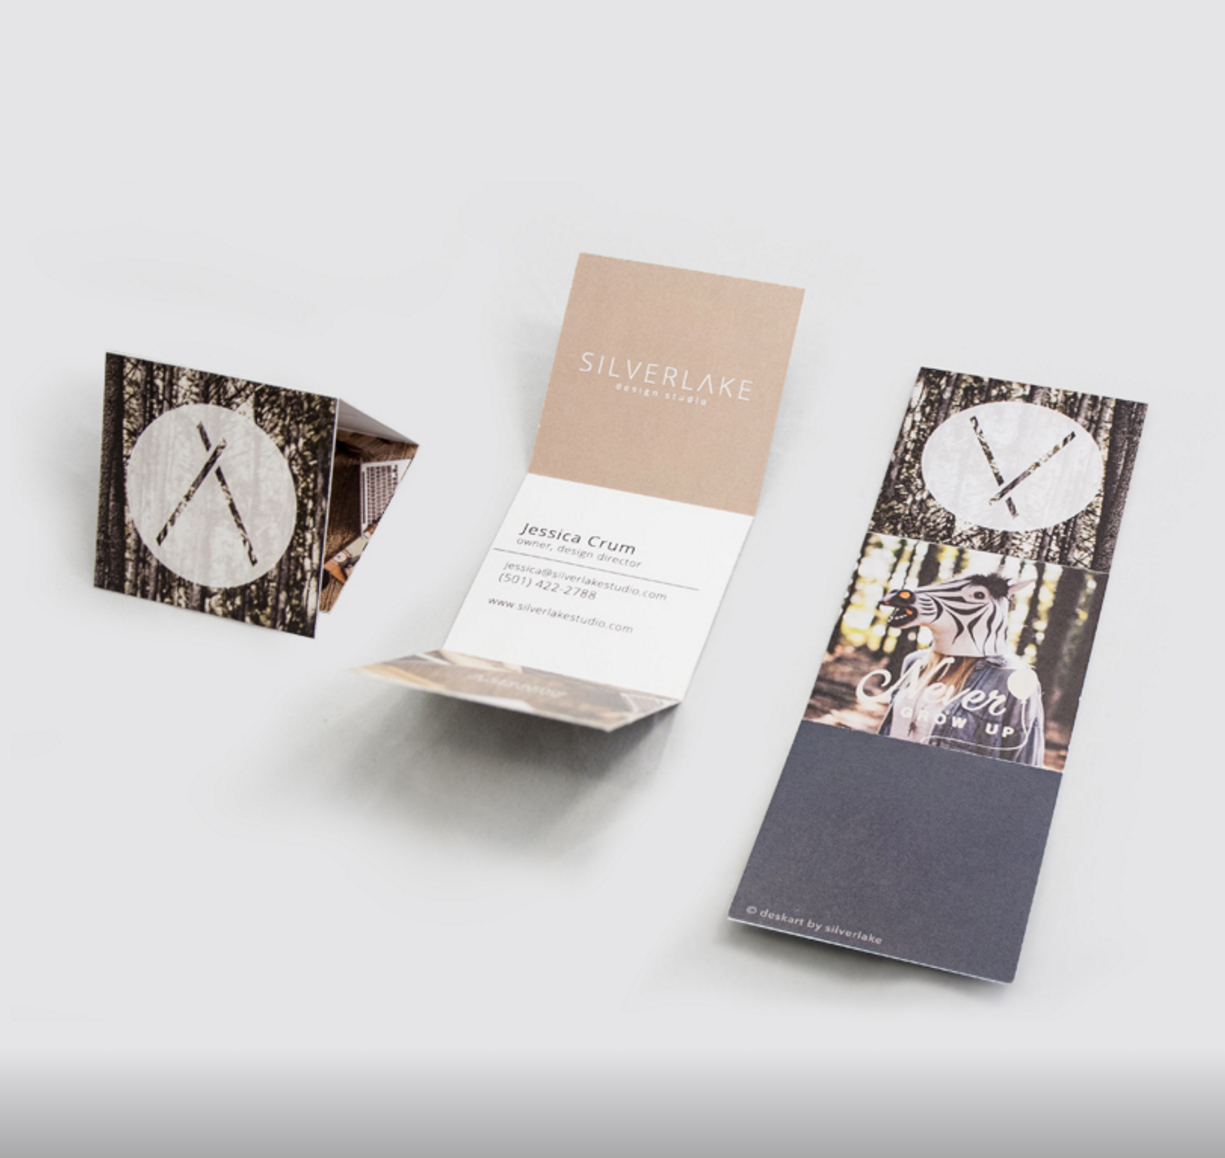 They designed these awesome business cards featuring the images from our shoot!